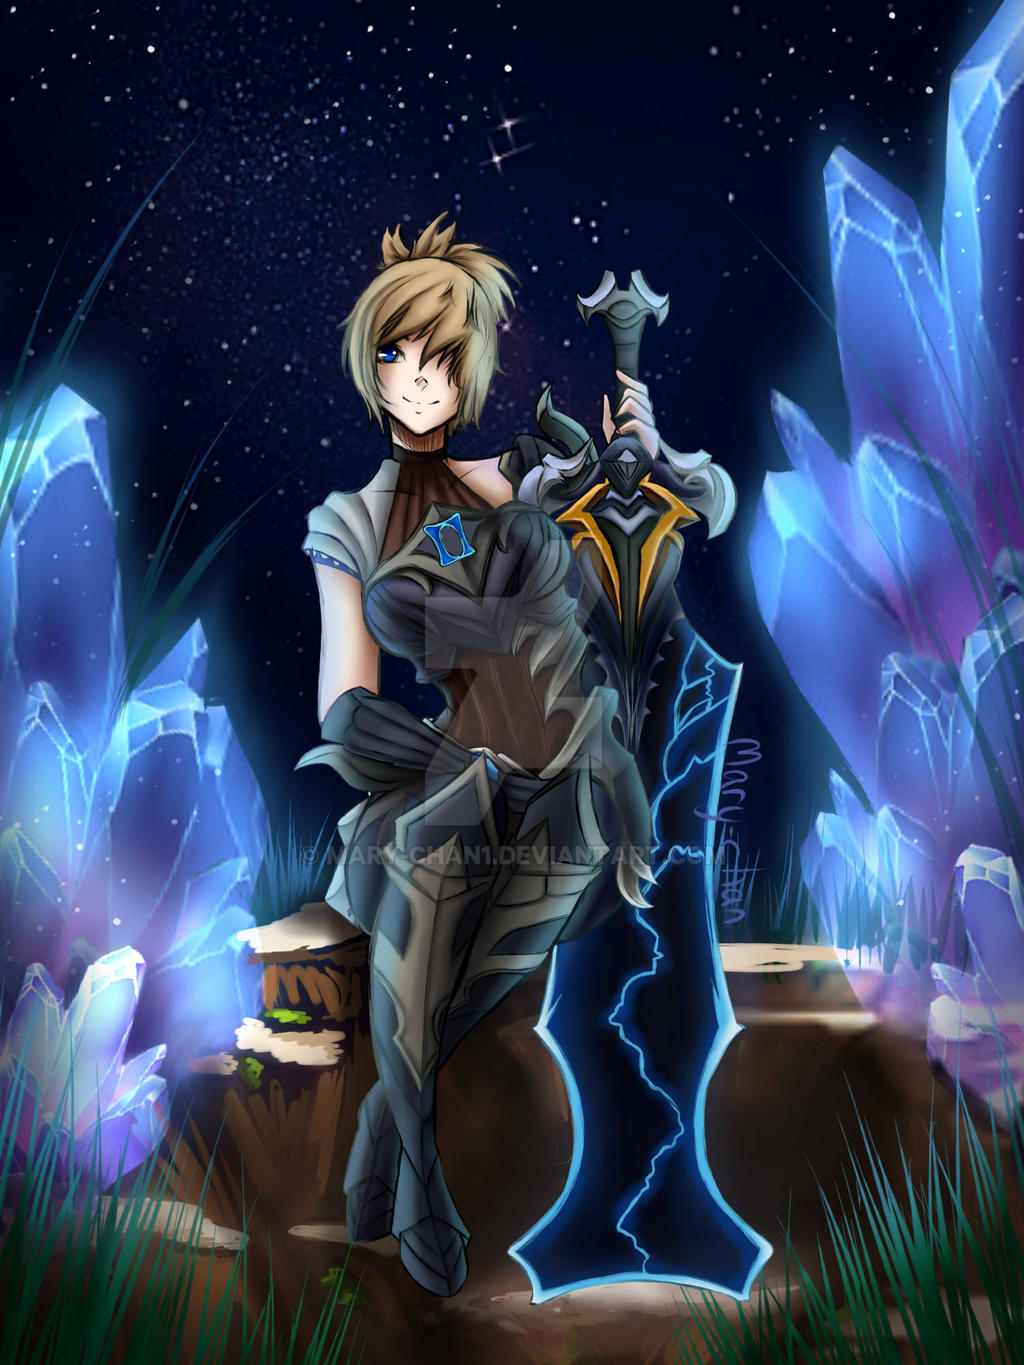 Championship riven wallpaper the image for Upullandpay